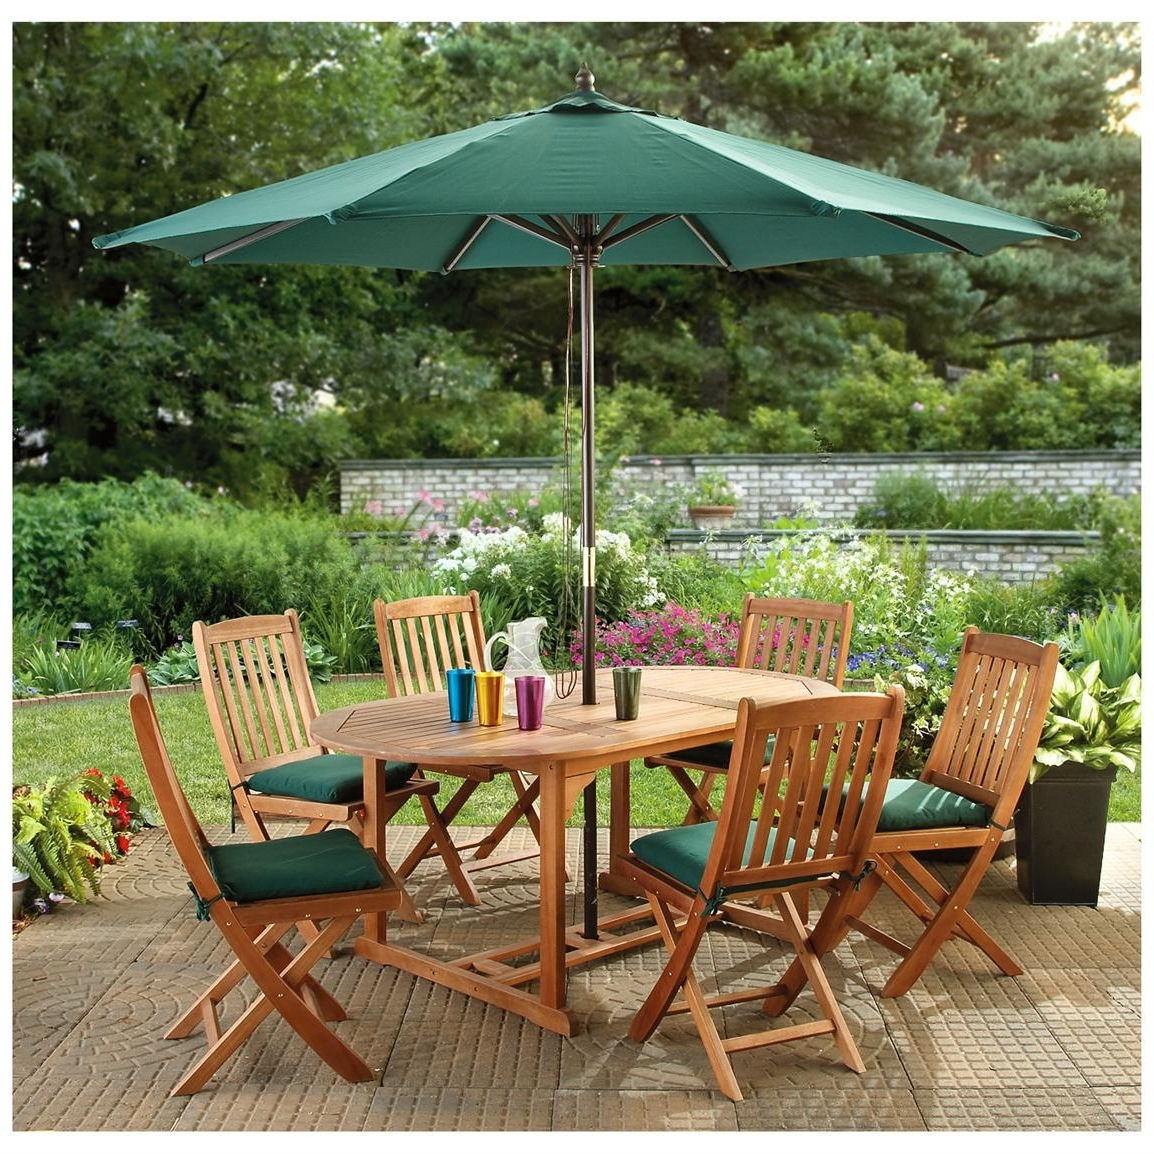 2018 Patio Umbrella Table Attachment — Mistikcamping Home Design : The Within Patio Umbrellas For Tables (View 7 of 20)